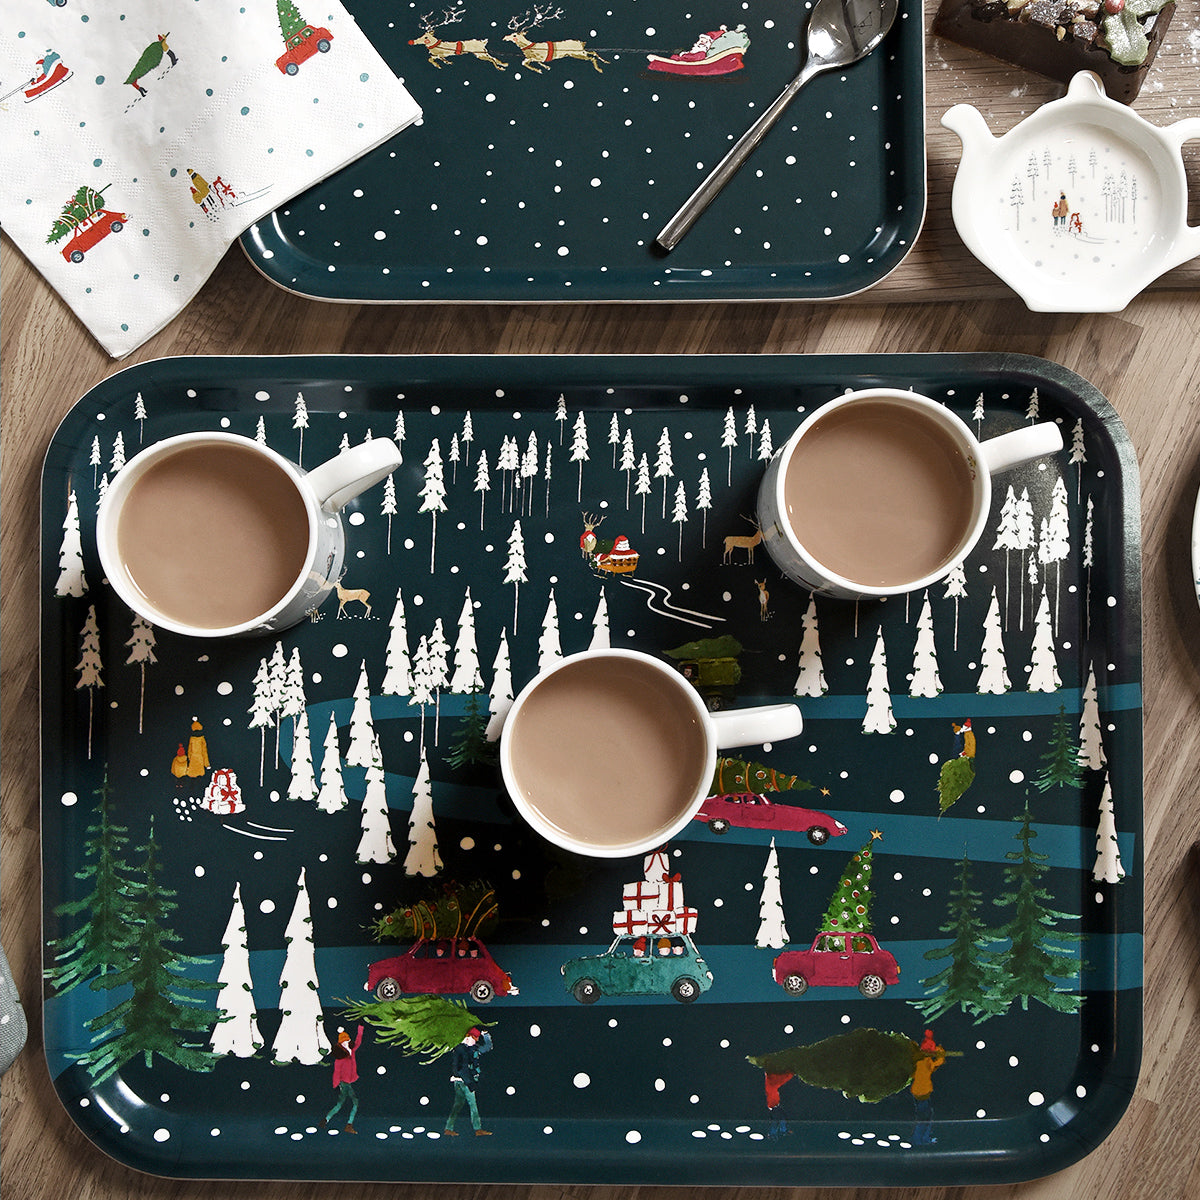 Home for Christmas Printed Tray